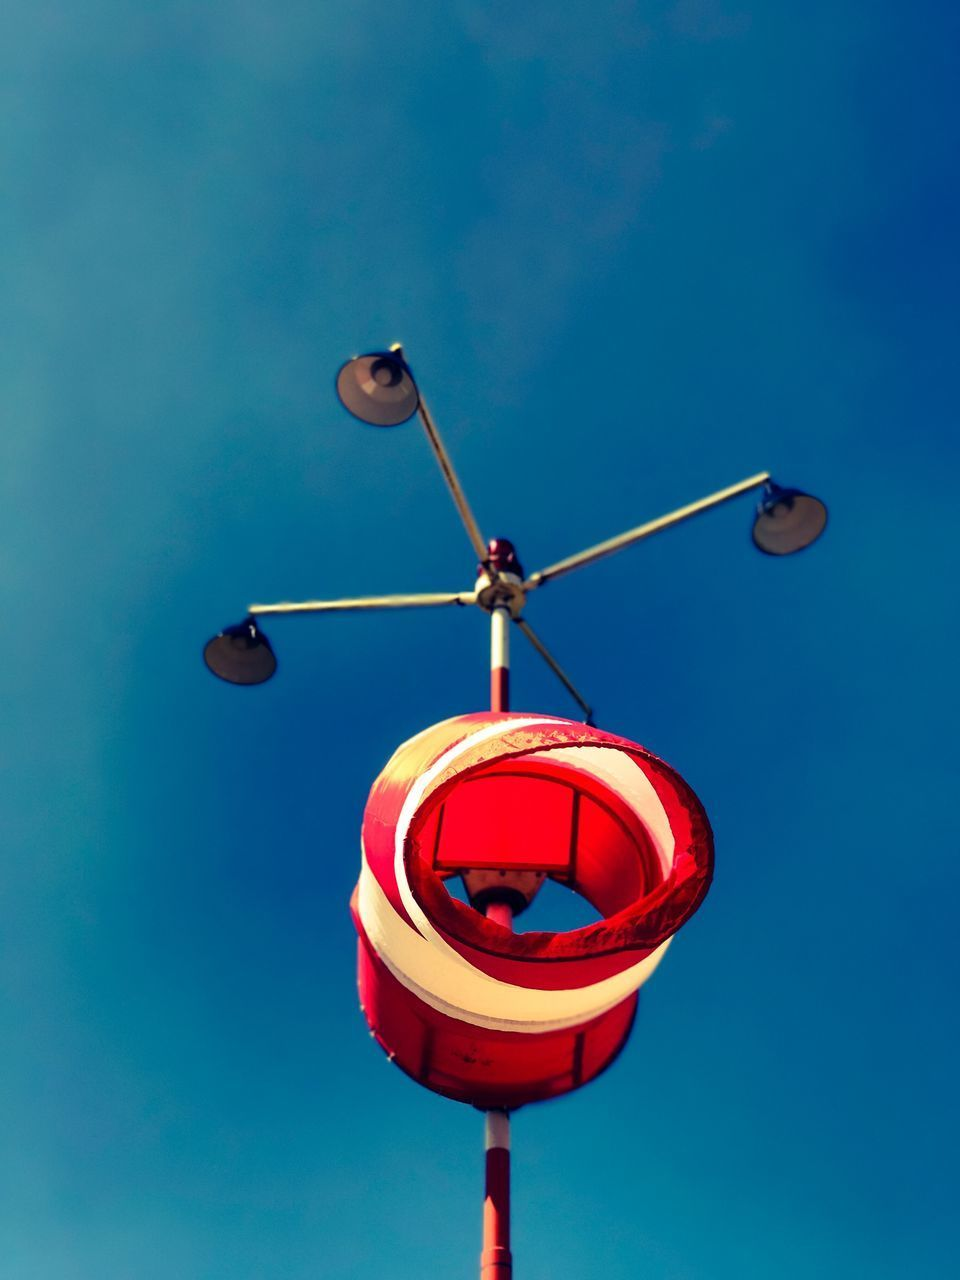 day, low angle view, blue, communication, no people, outdoors, guidance, red, sky, close-up